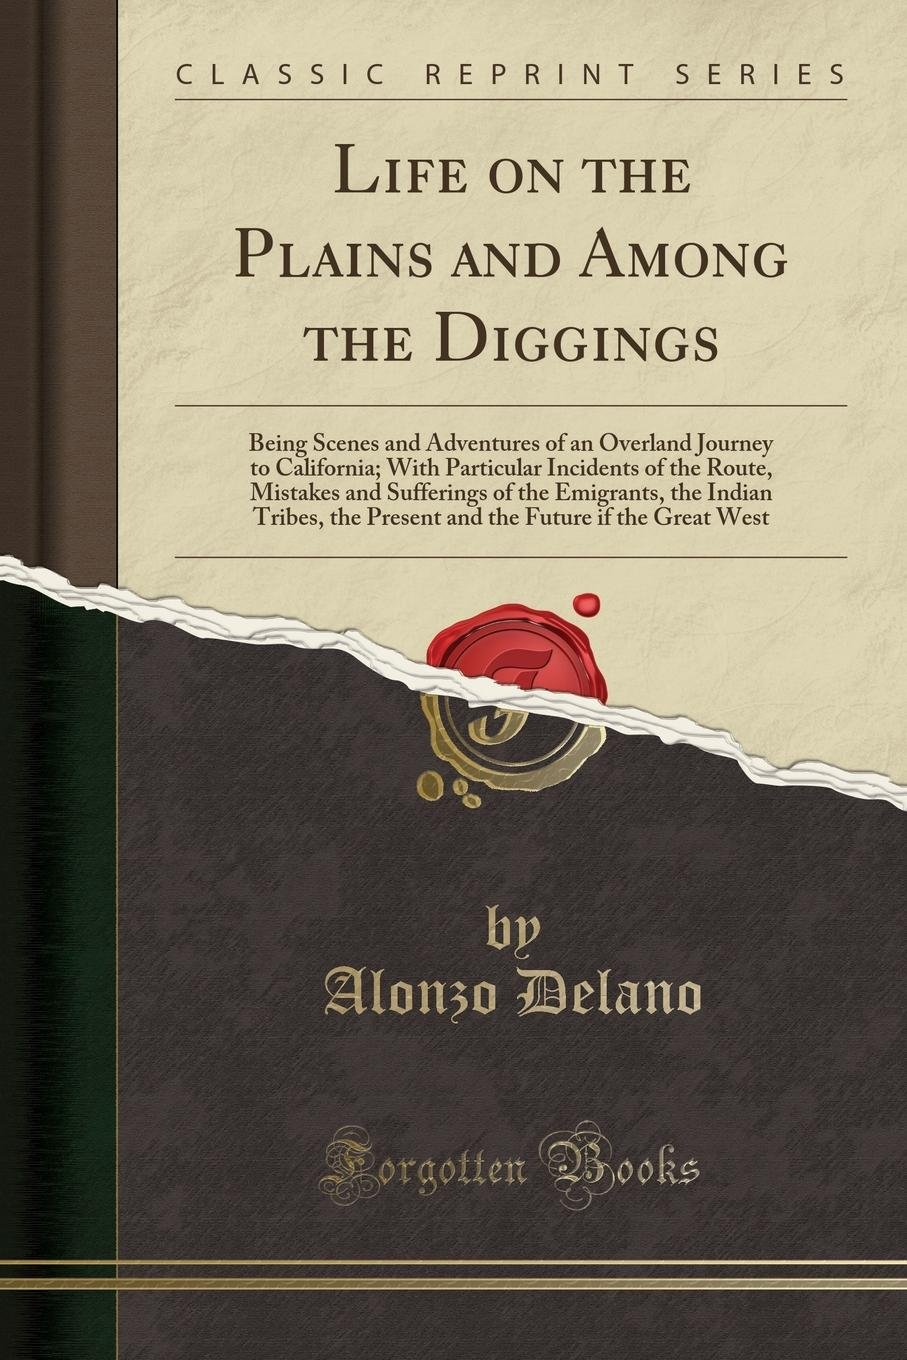 Read Online Life on the Plains and Among the Diggings: Being Scenes and Adventures of an Overland Journey to California; With Particular Incidents of the Route, ... the Present and the Future if the Great West PDF